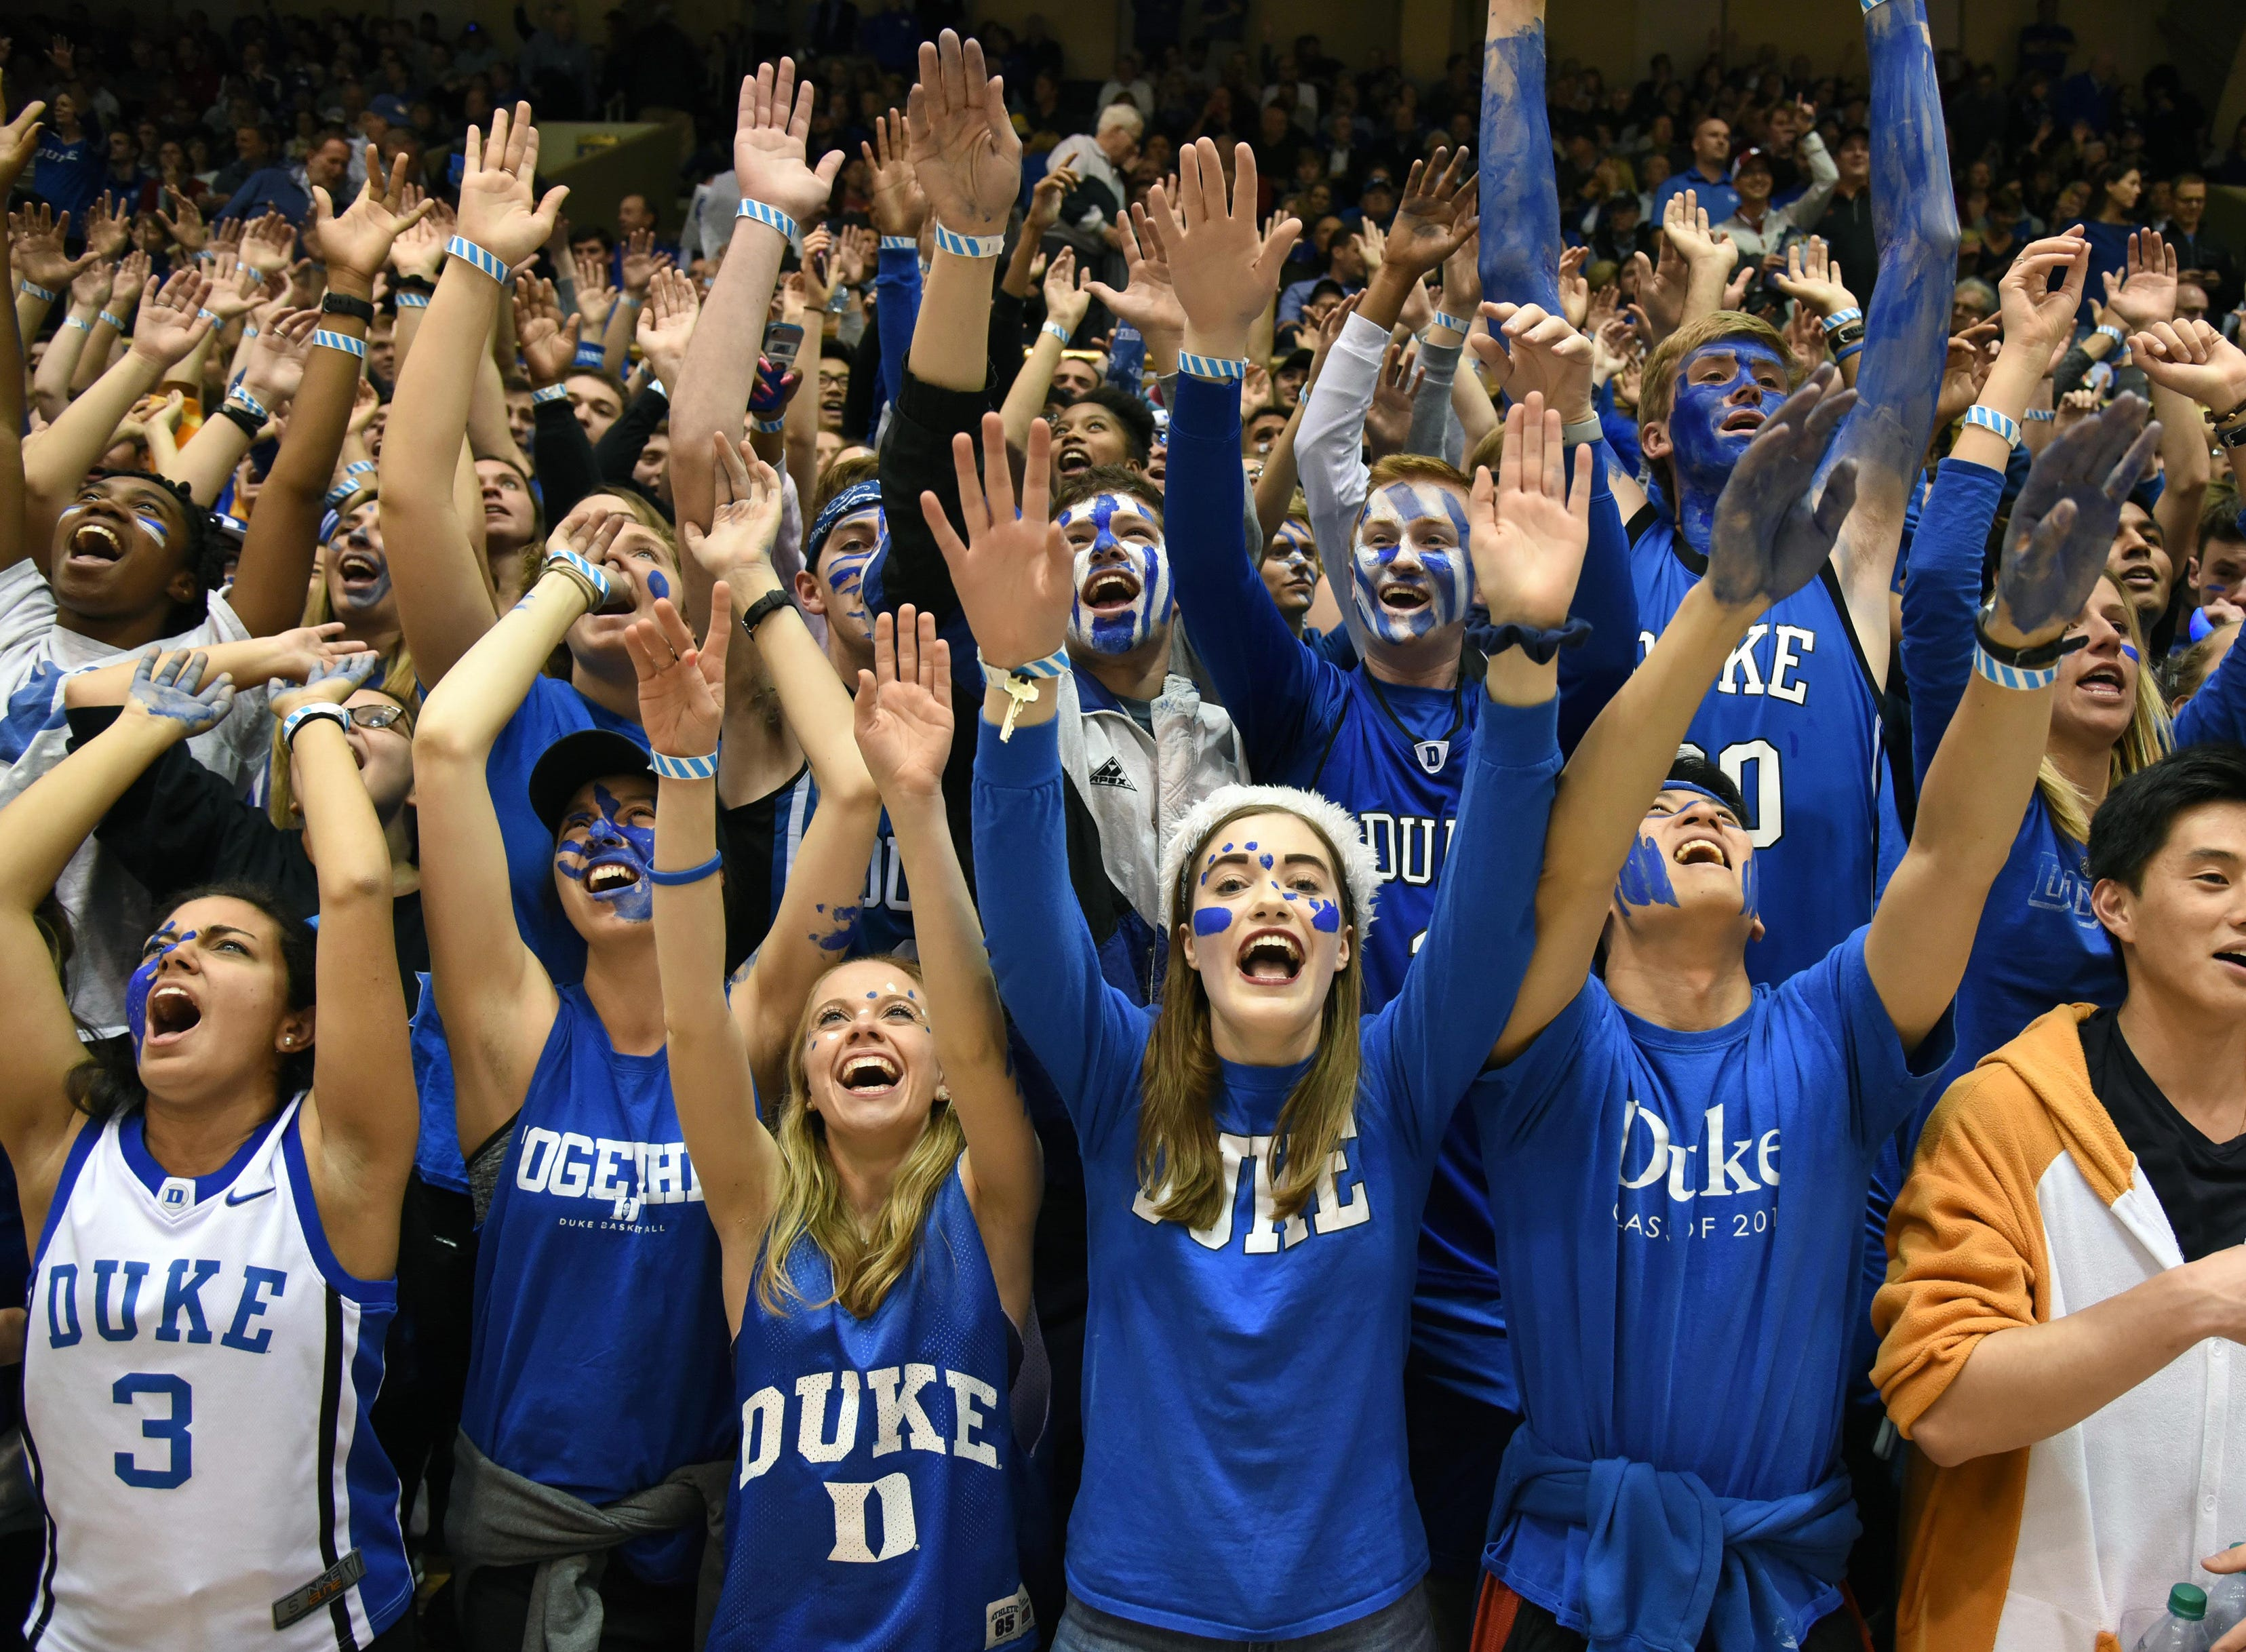 Nov 27, 2018; Durham, NC, USA; Duke Blue Devils fans cheer prior to a game against the Indiana Hoosiers at Cameron Indoor Stadium.